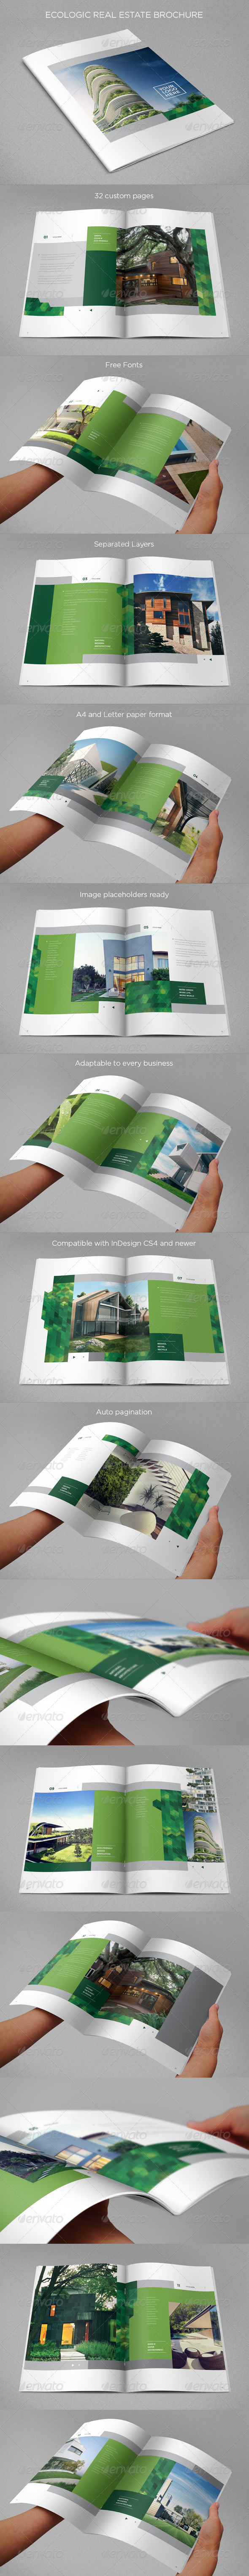 GraphicRiver Ecologic Real Estate Brochure 8645126